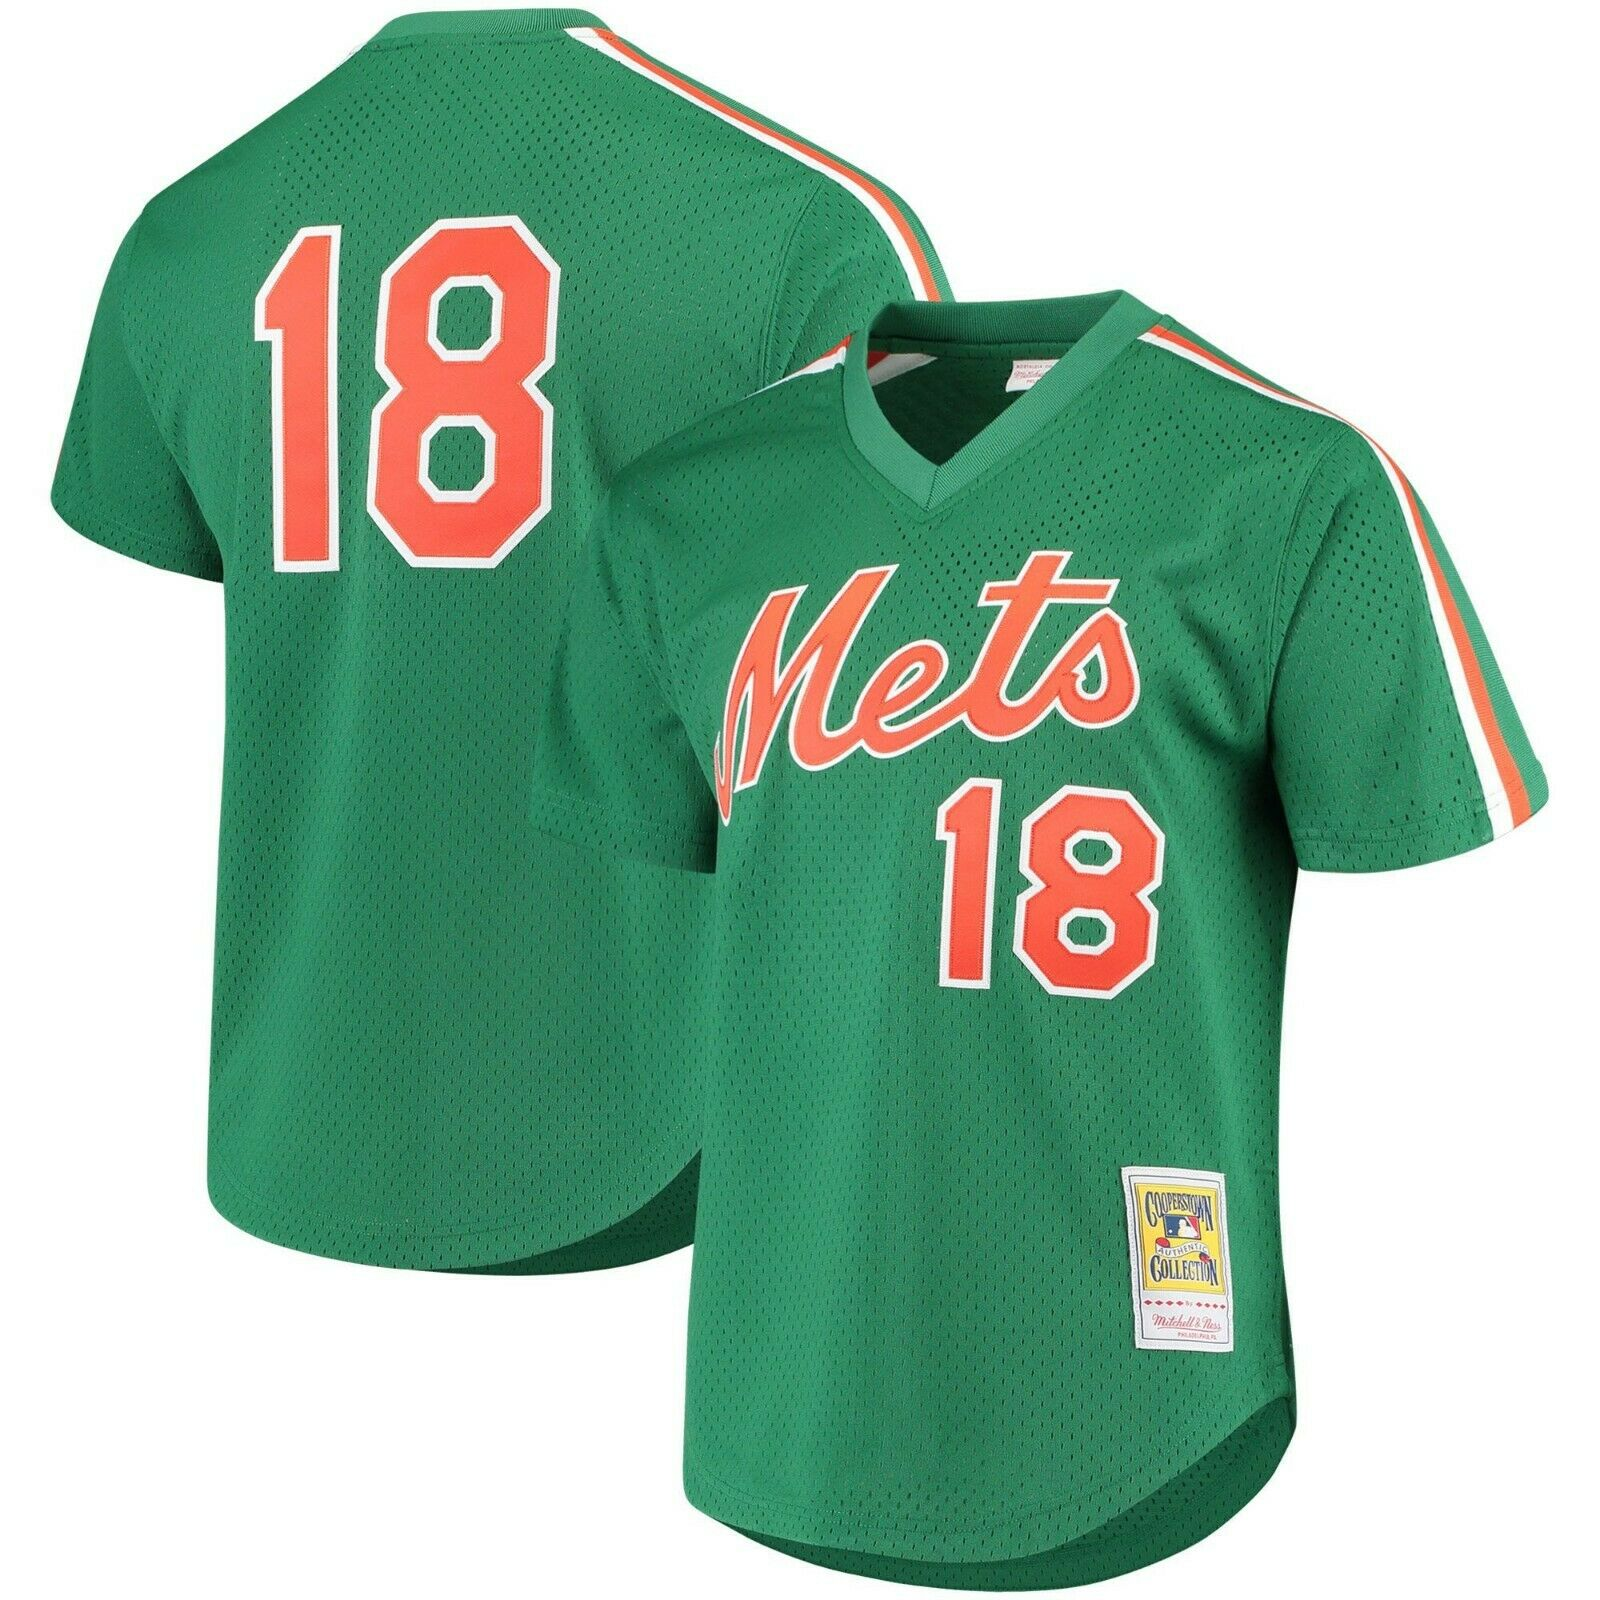 low priced f6b4d 1d8ba Details about MITCHELL & NESS Green New York Mets #18 Strawberry BATTING  PRACTICE MESH JERSEY